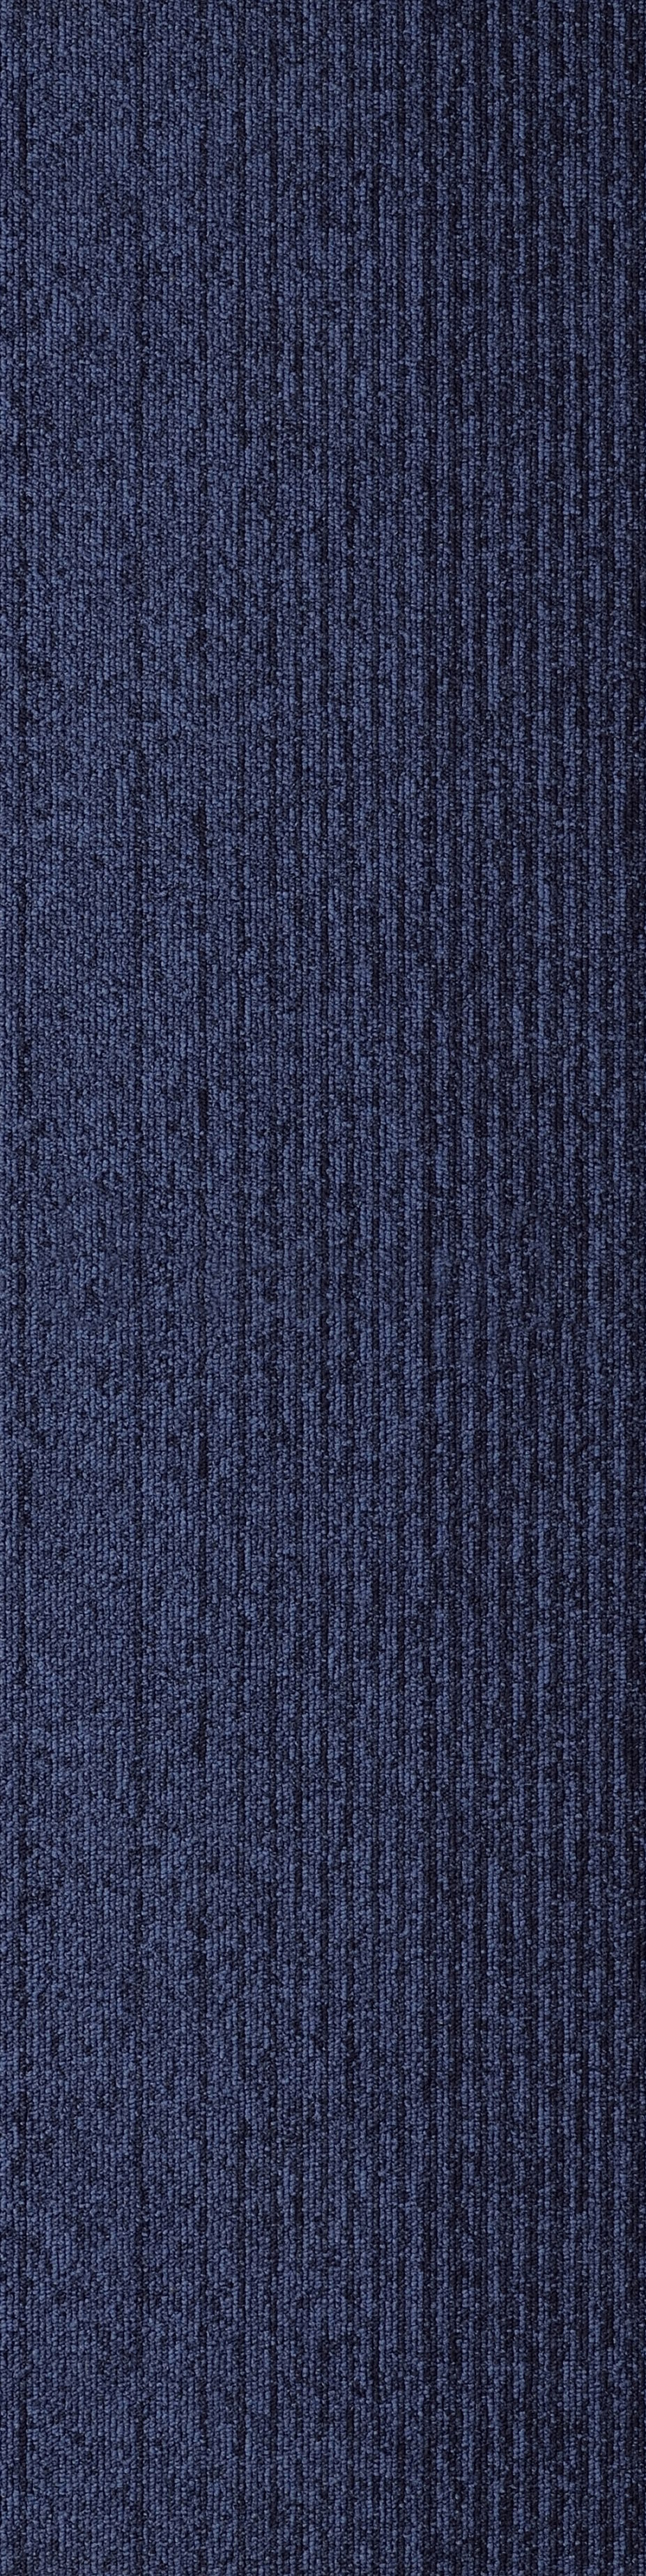 grade carpet planks - 22502 - denim